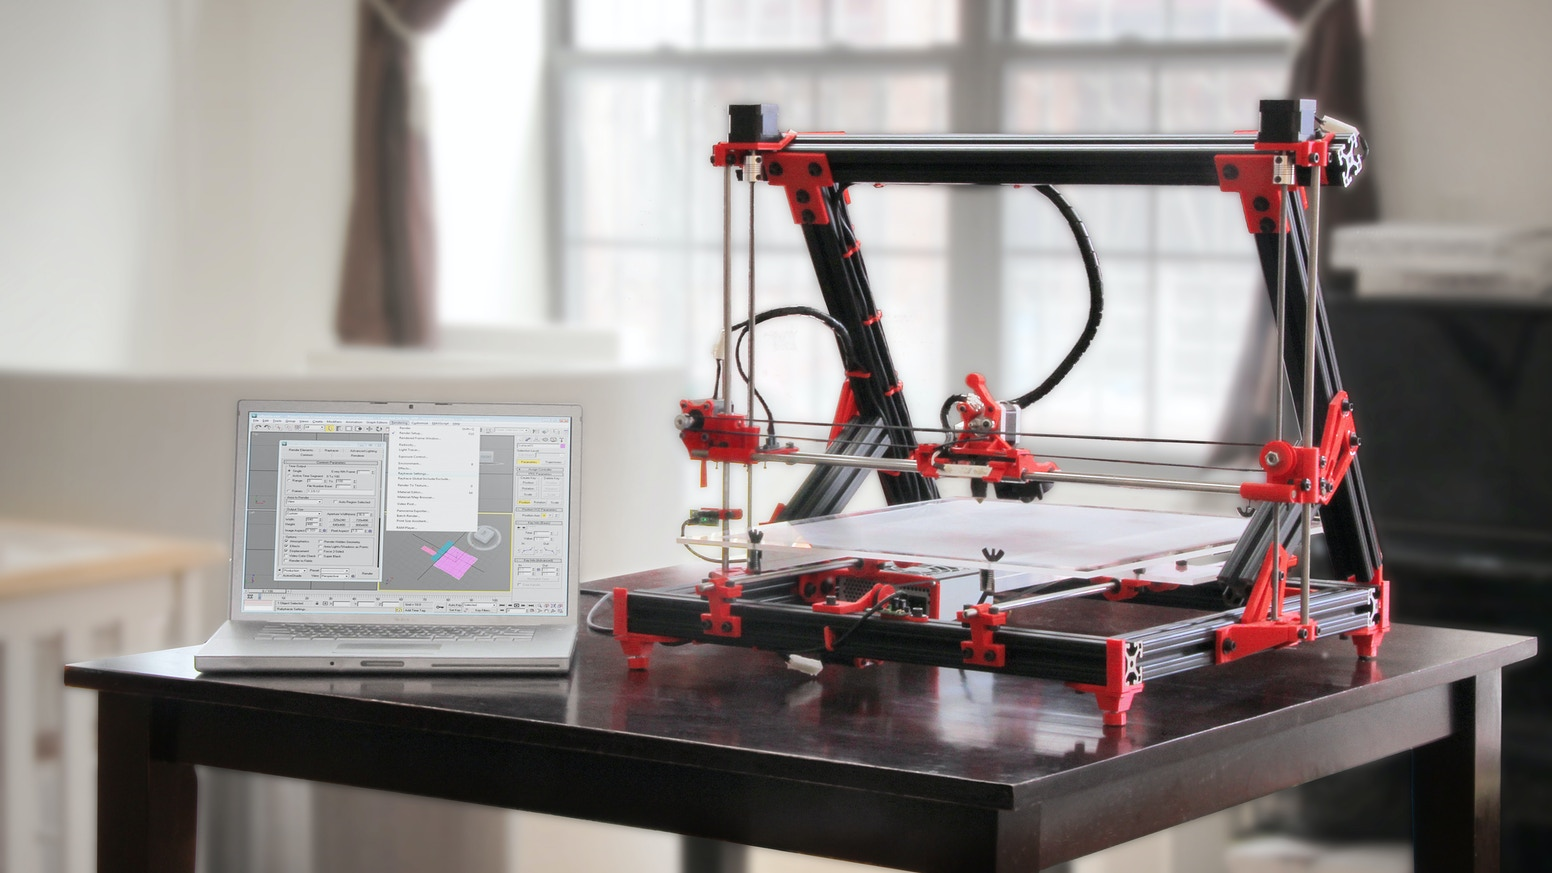 The original gMax was a new and large desktop 3D printer with an incredible 16'' x 16'' x 9'' (2,304 cubic in) build volume! The new gMax 1.5+ and gMax 1.5 XT+ are even bigger and even better. Check out gCreate.com to get all the information.